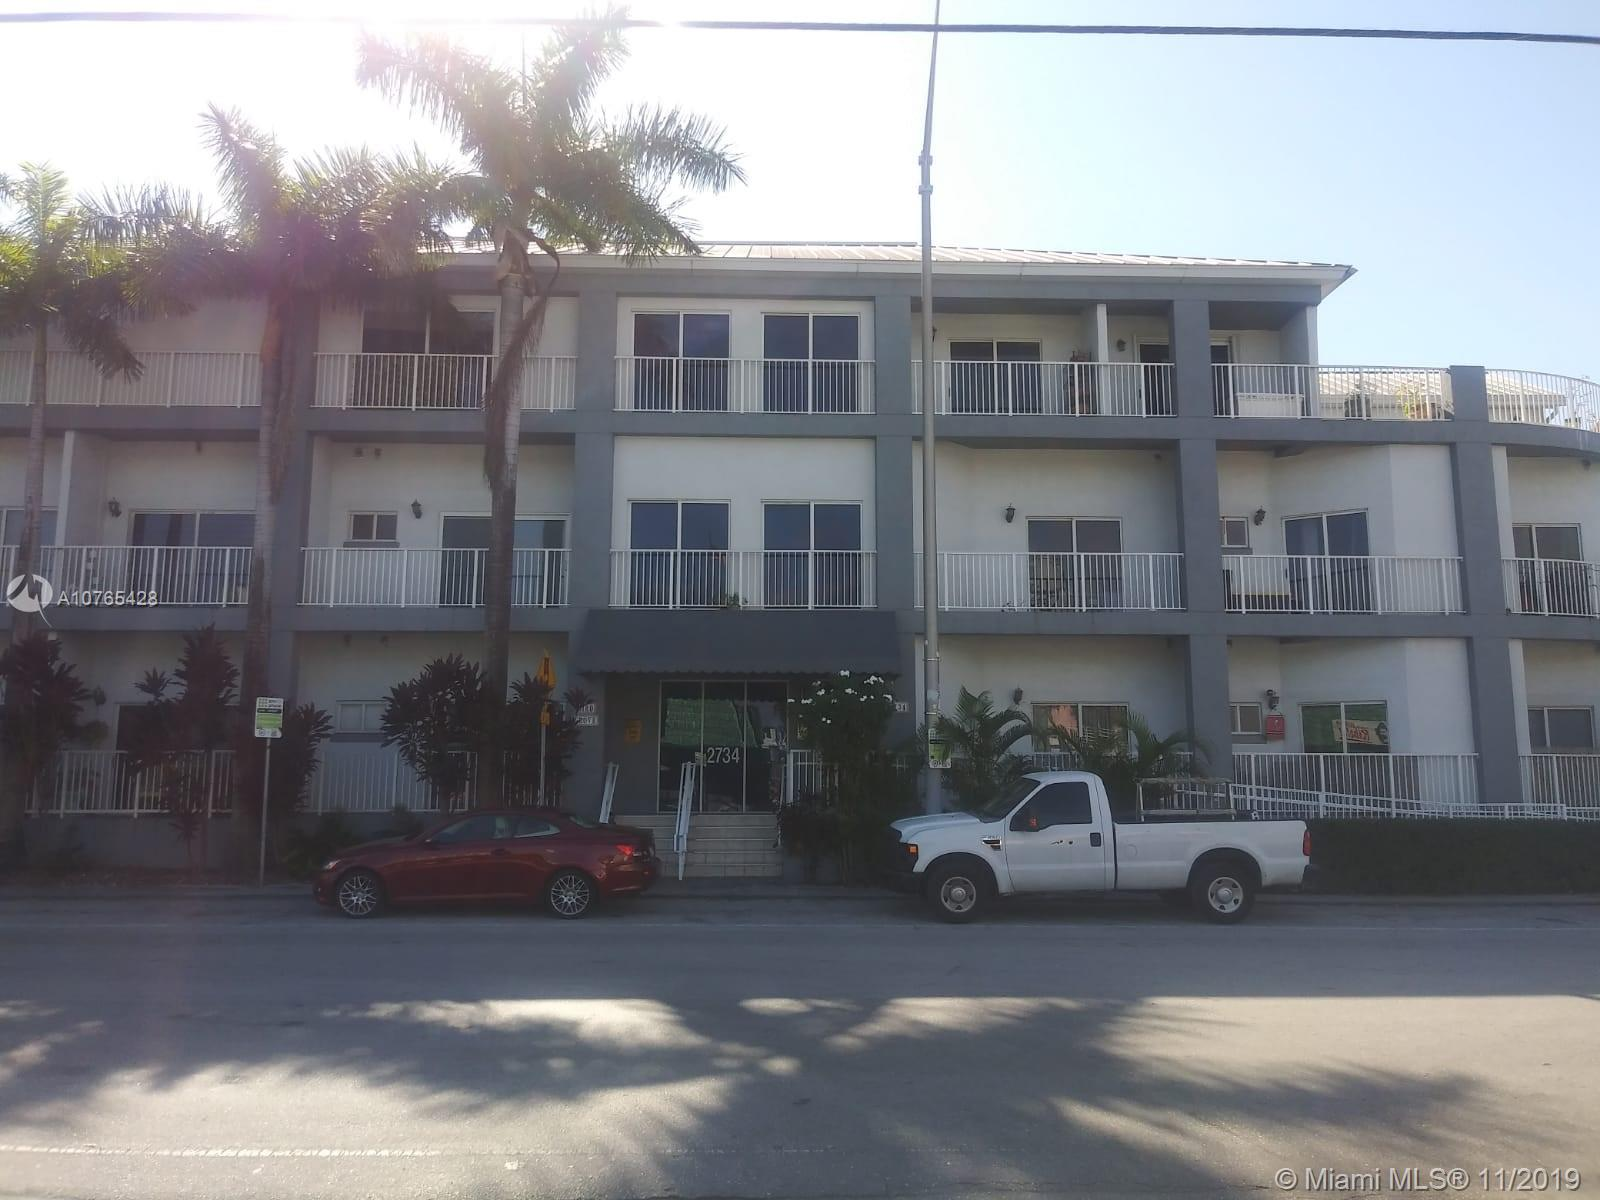 Updated unit in Coconut Grove. Walking distance to Cocowalk, Parks, entertainment, shopping. Close to UM and Metro station. 5 Minutes to Brickell. Very quite and secured newer building with covered parking. Per seller Units is 660 SF, (bigger than tax roll). Unlike the other unit, this one has an extra closet as well as impact sliding door. Low maintenance fee. Covered parking. Quite building. Only 39 units. Maintenance concierge Monday to Friday.